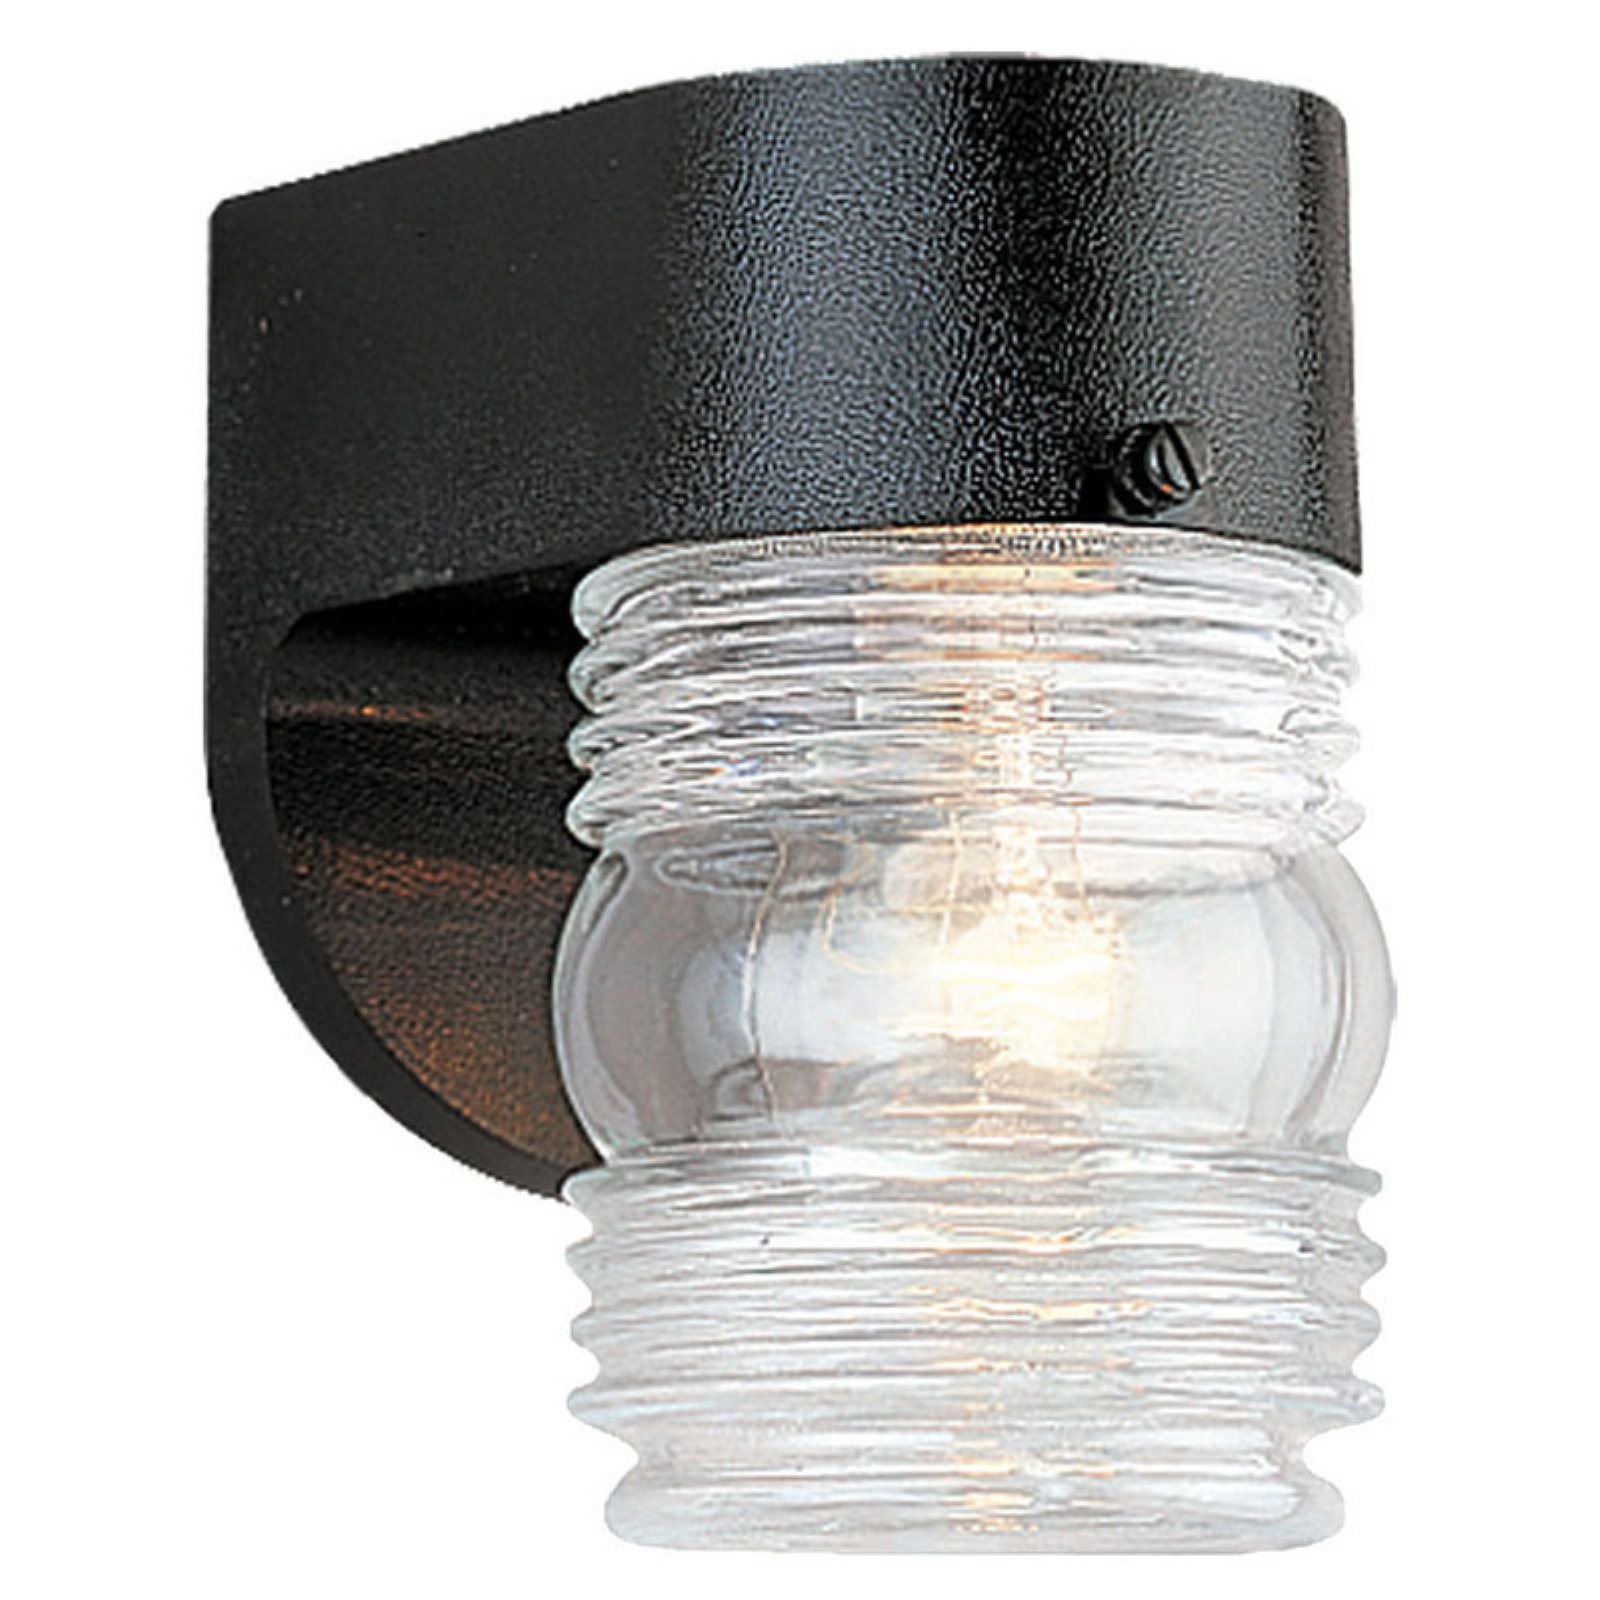 Sea Gull Outdoor Wall Light - 6H in. Black